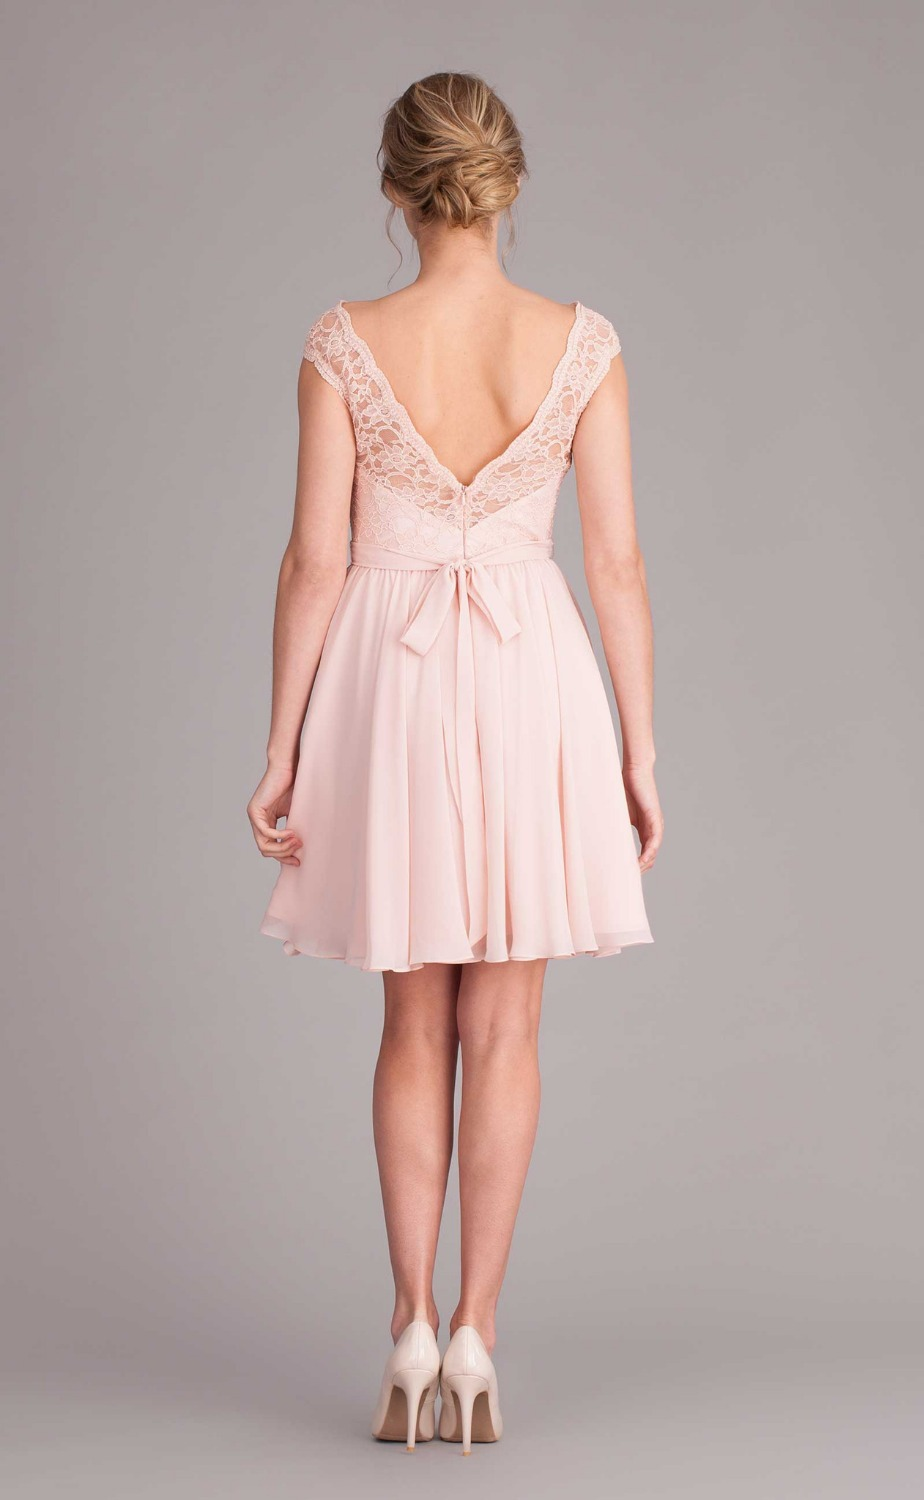 2dcf9fd85023a Pink V back cap sleeve short lace bridesmaid dress with sashes Knee ...